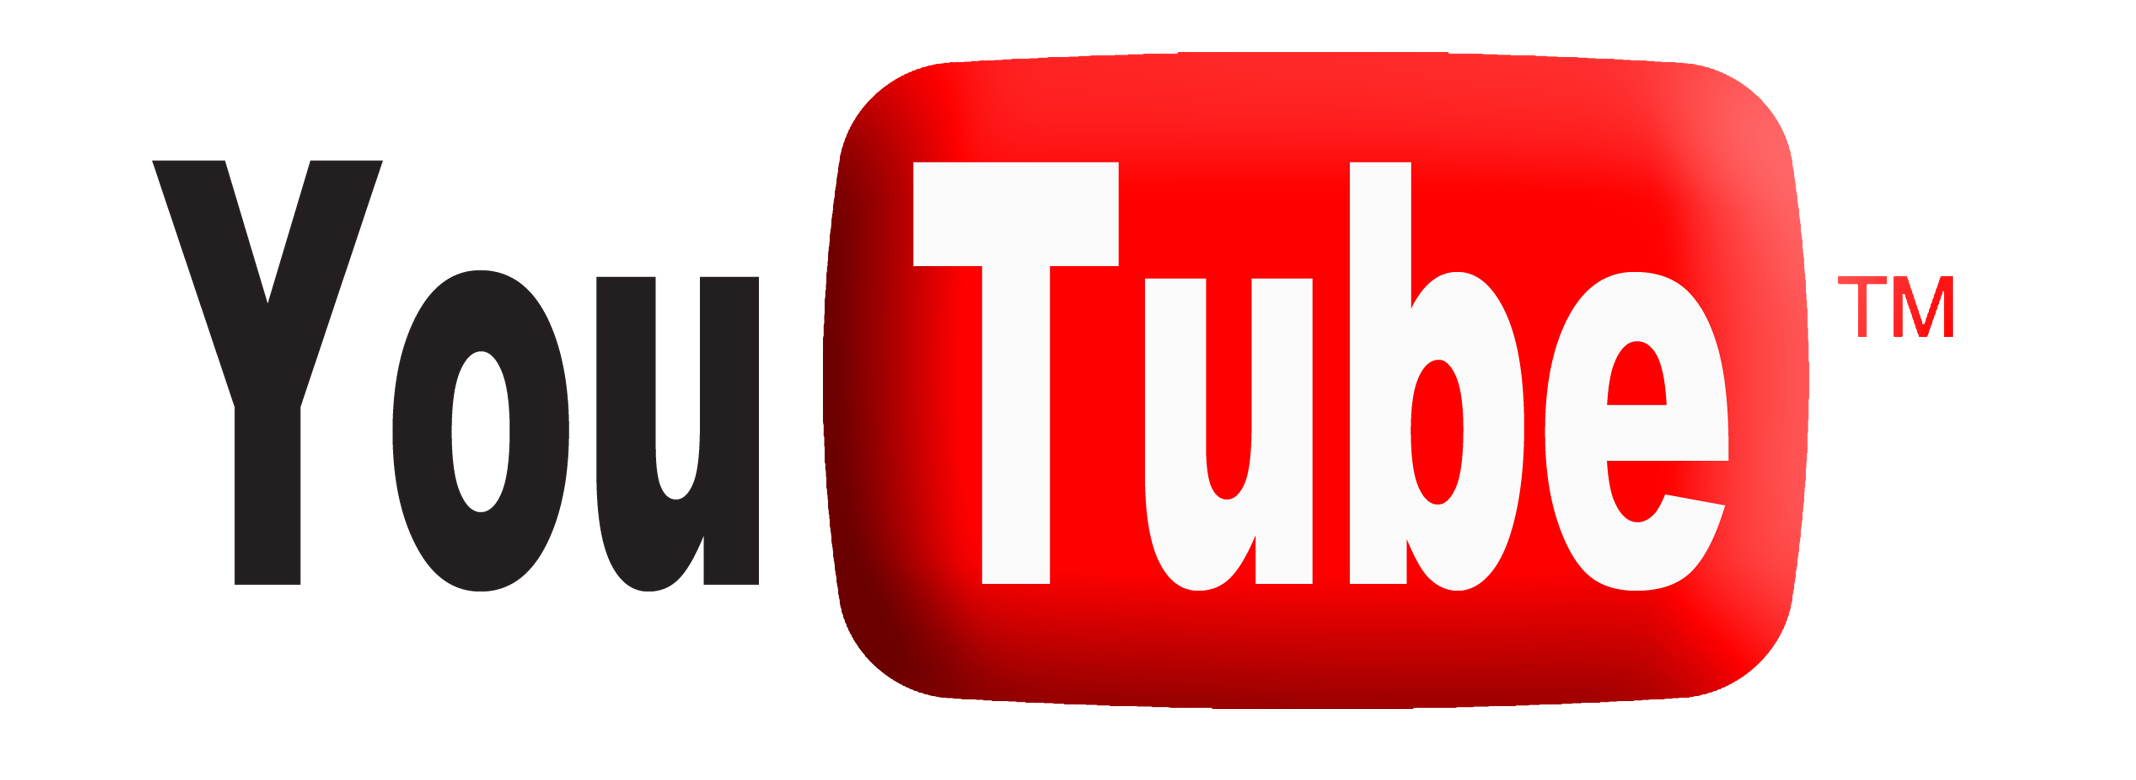 Youtube Logo Png Transparent Background Famous Logos